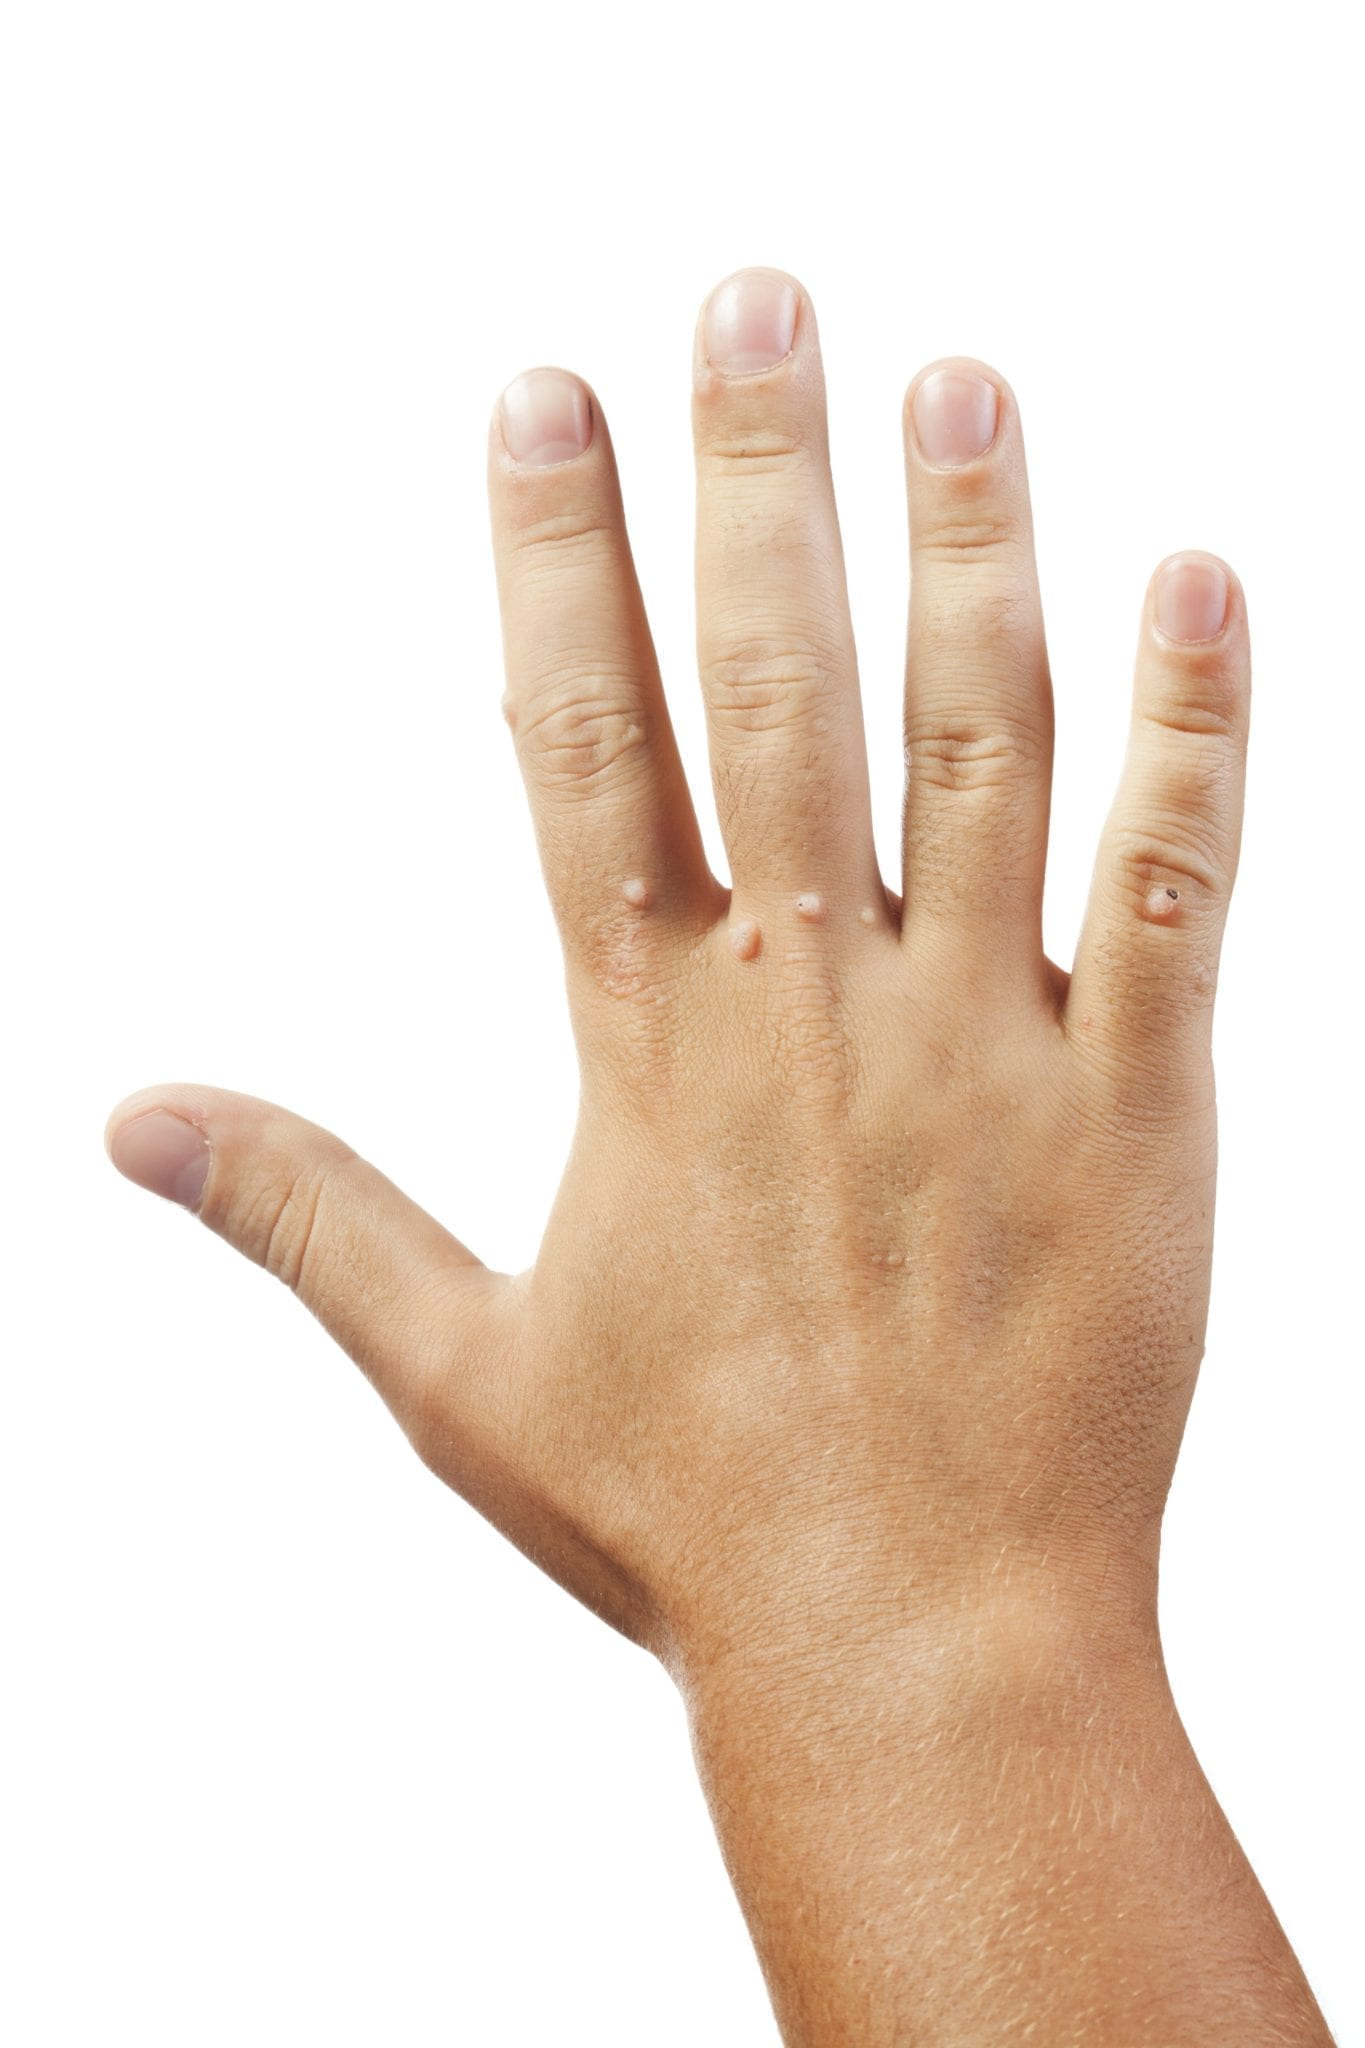 Warts on hands and feet during pregnancy. Warts on hands in pregnancy